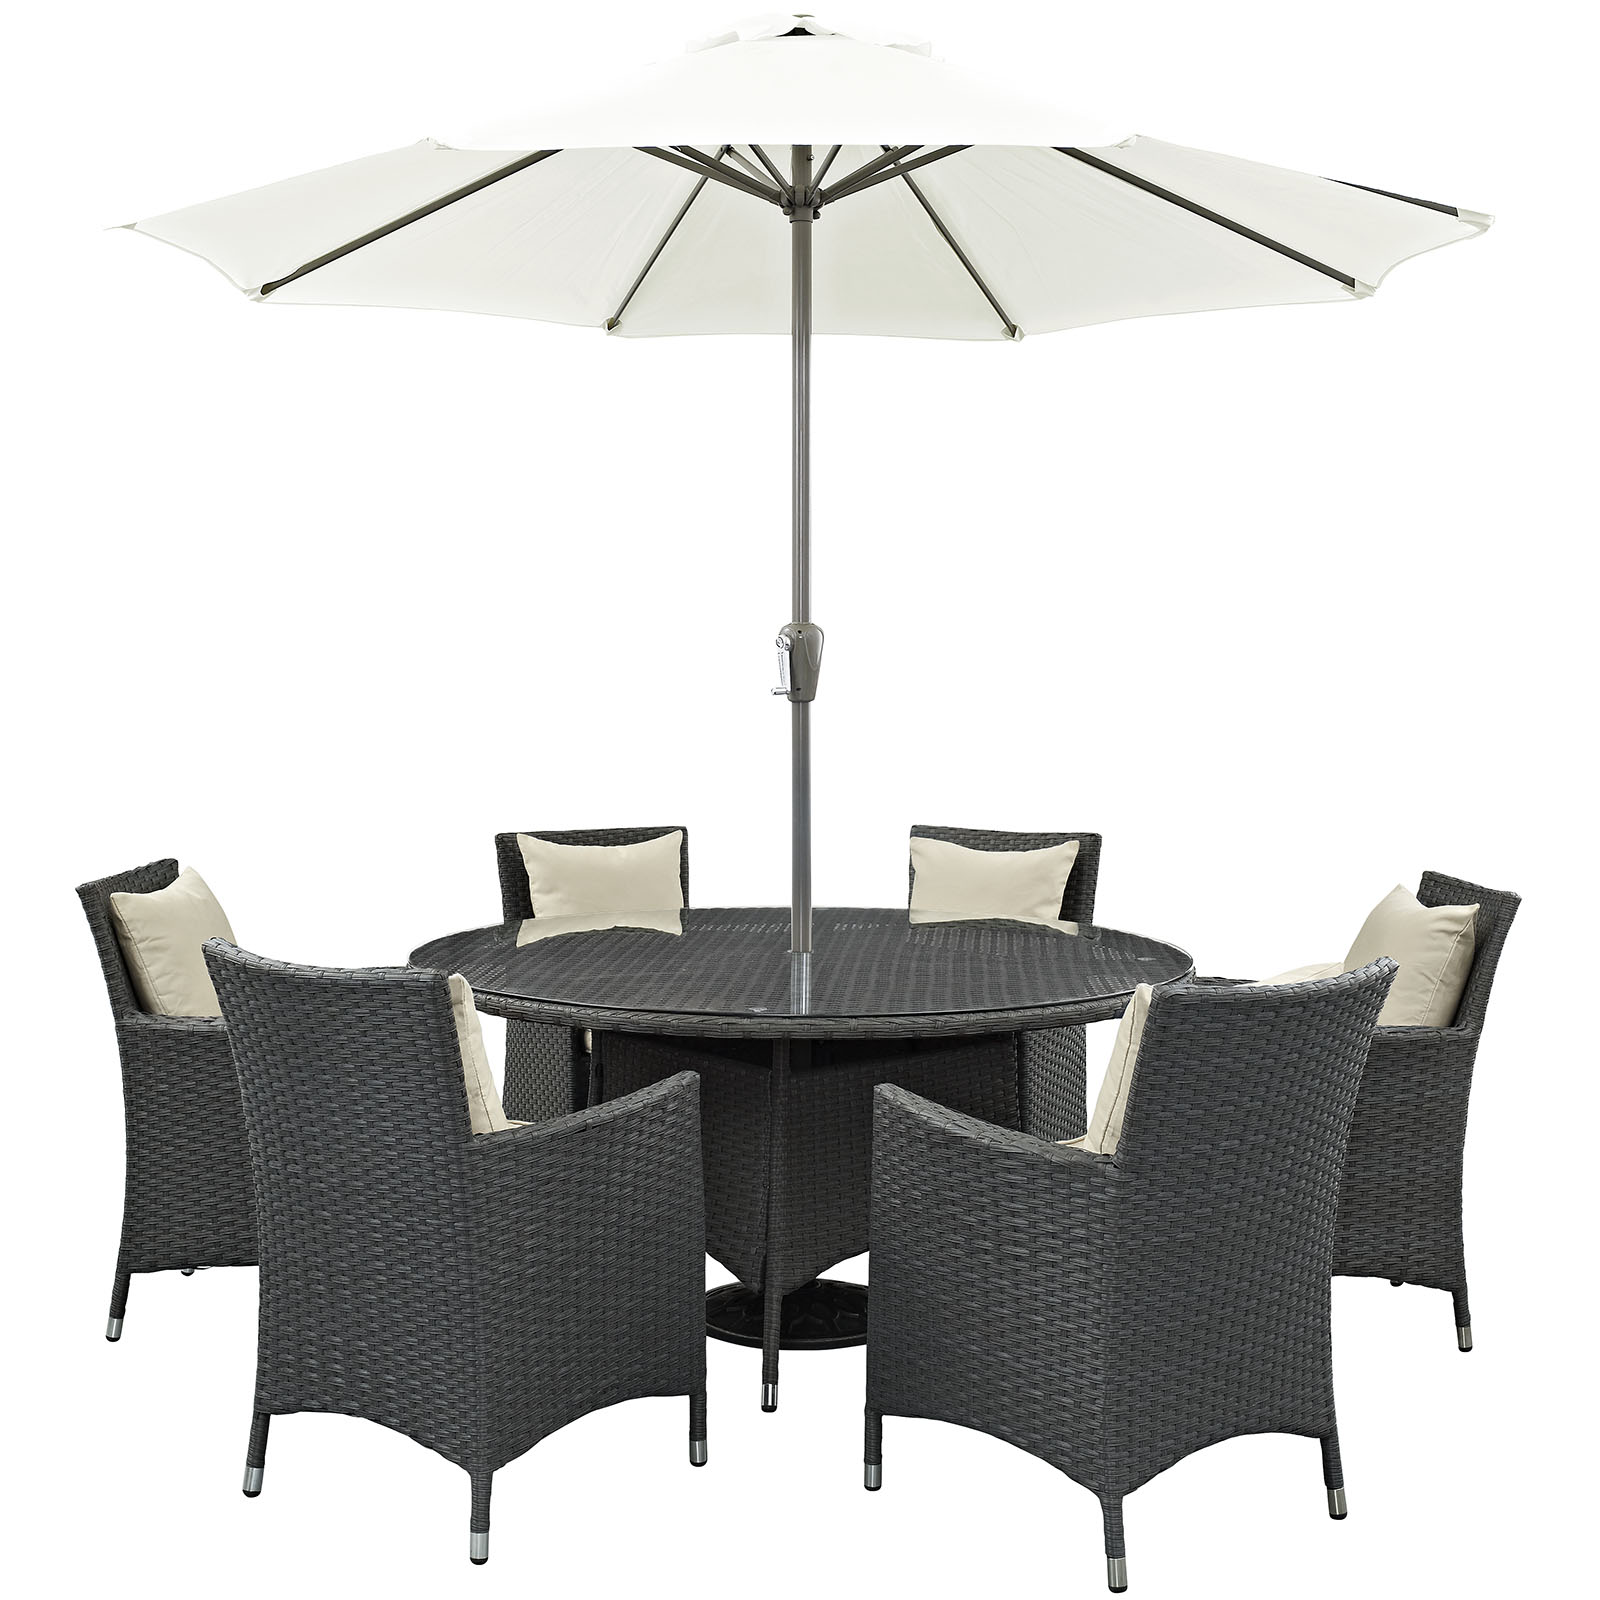 Modern Contemporary Urban Design Outdoor Patio Balcony Eight PCS Dining Chairs and Table Set, Beige, Rattan